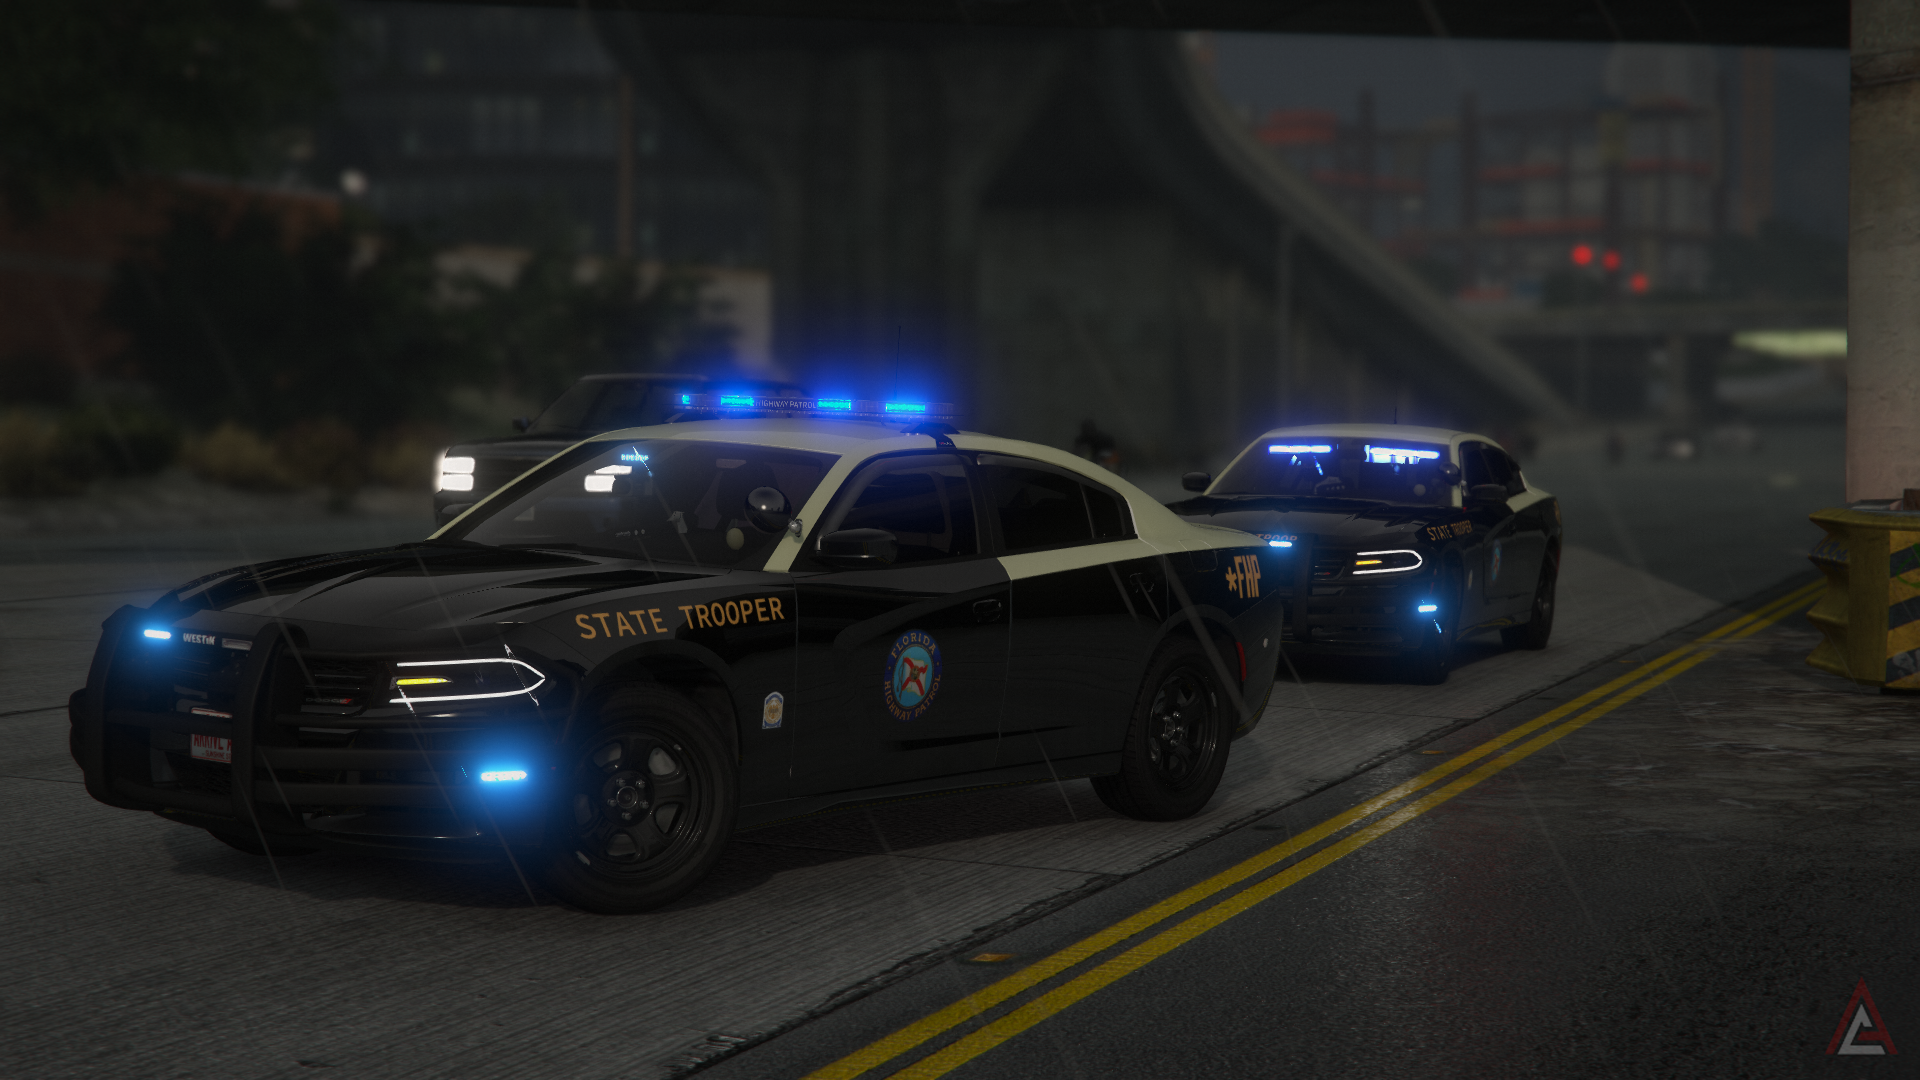   Florida state trooper '18 chargers  